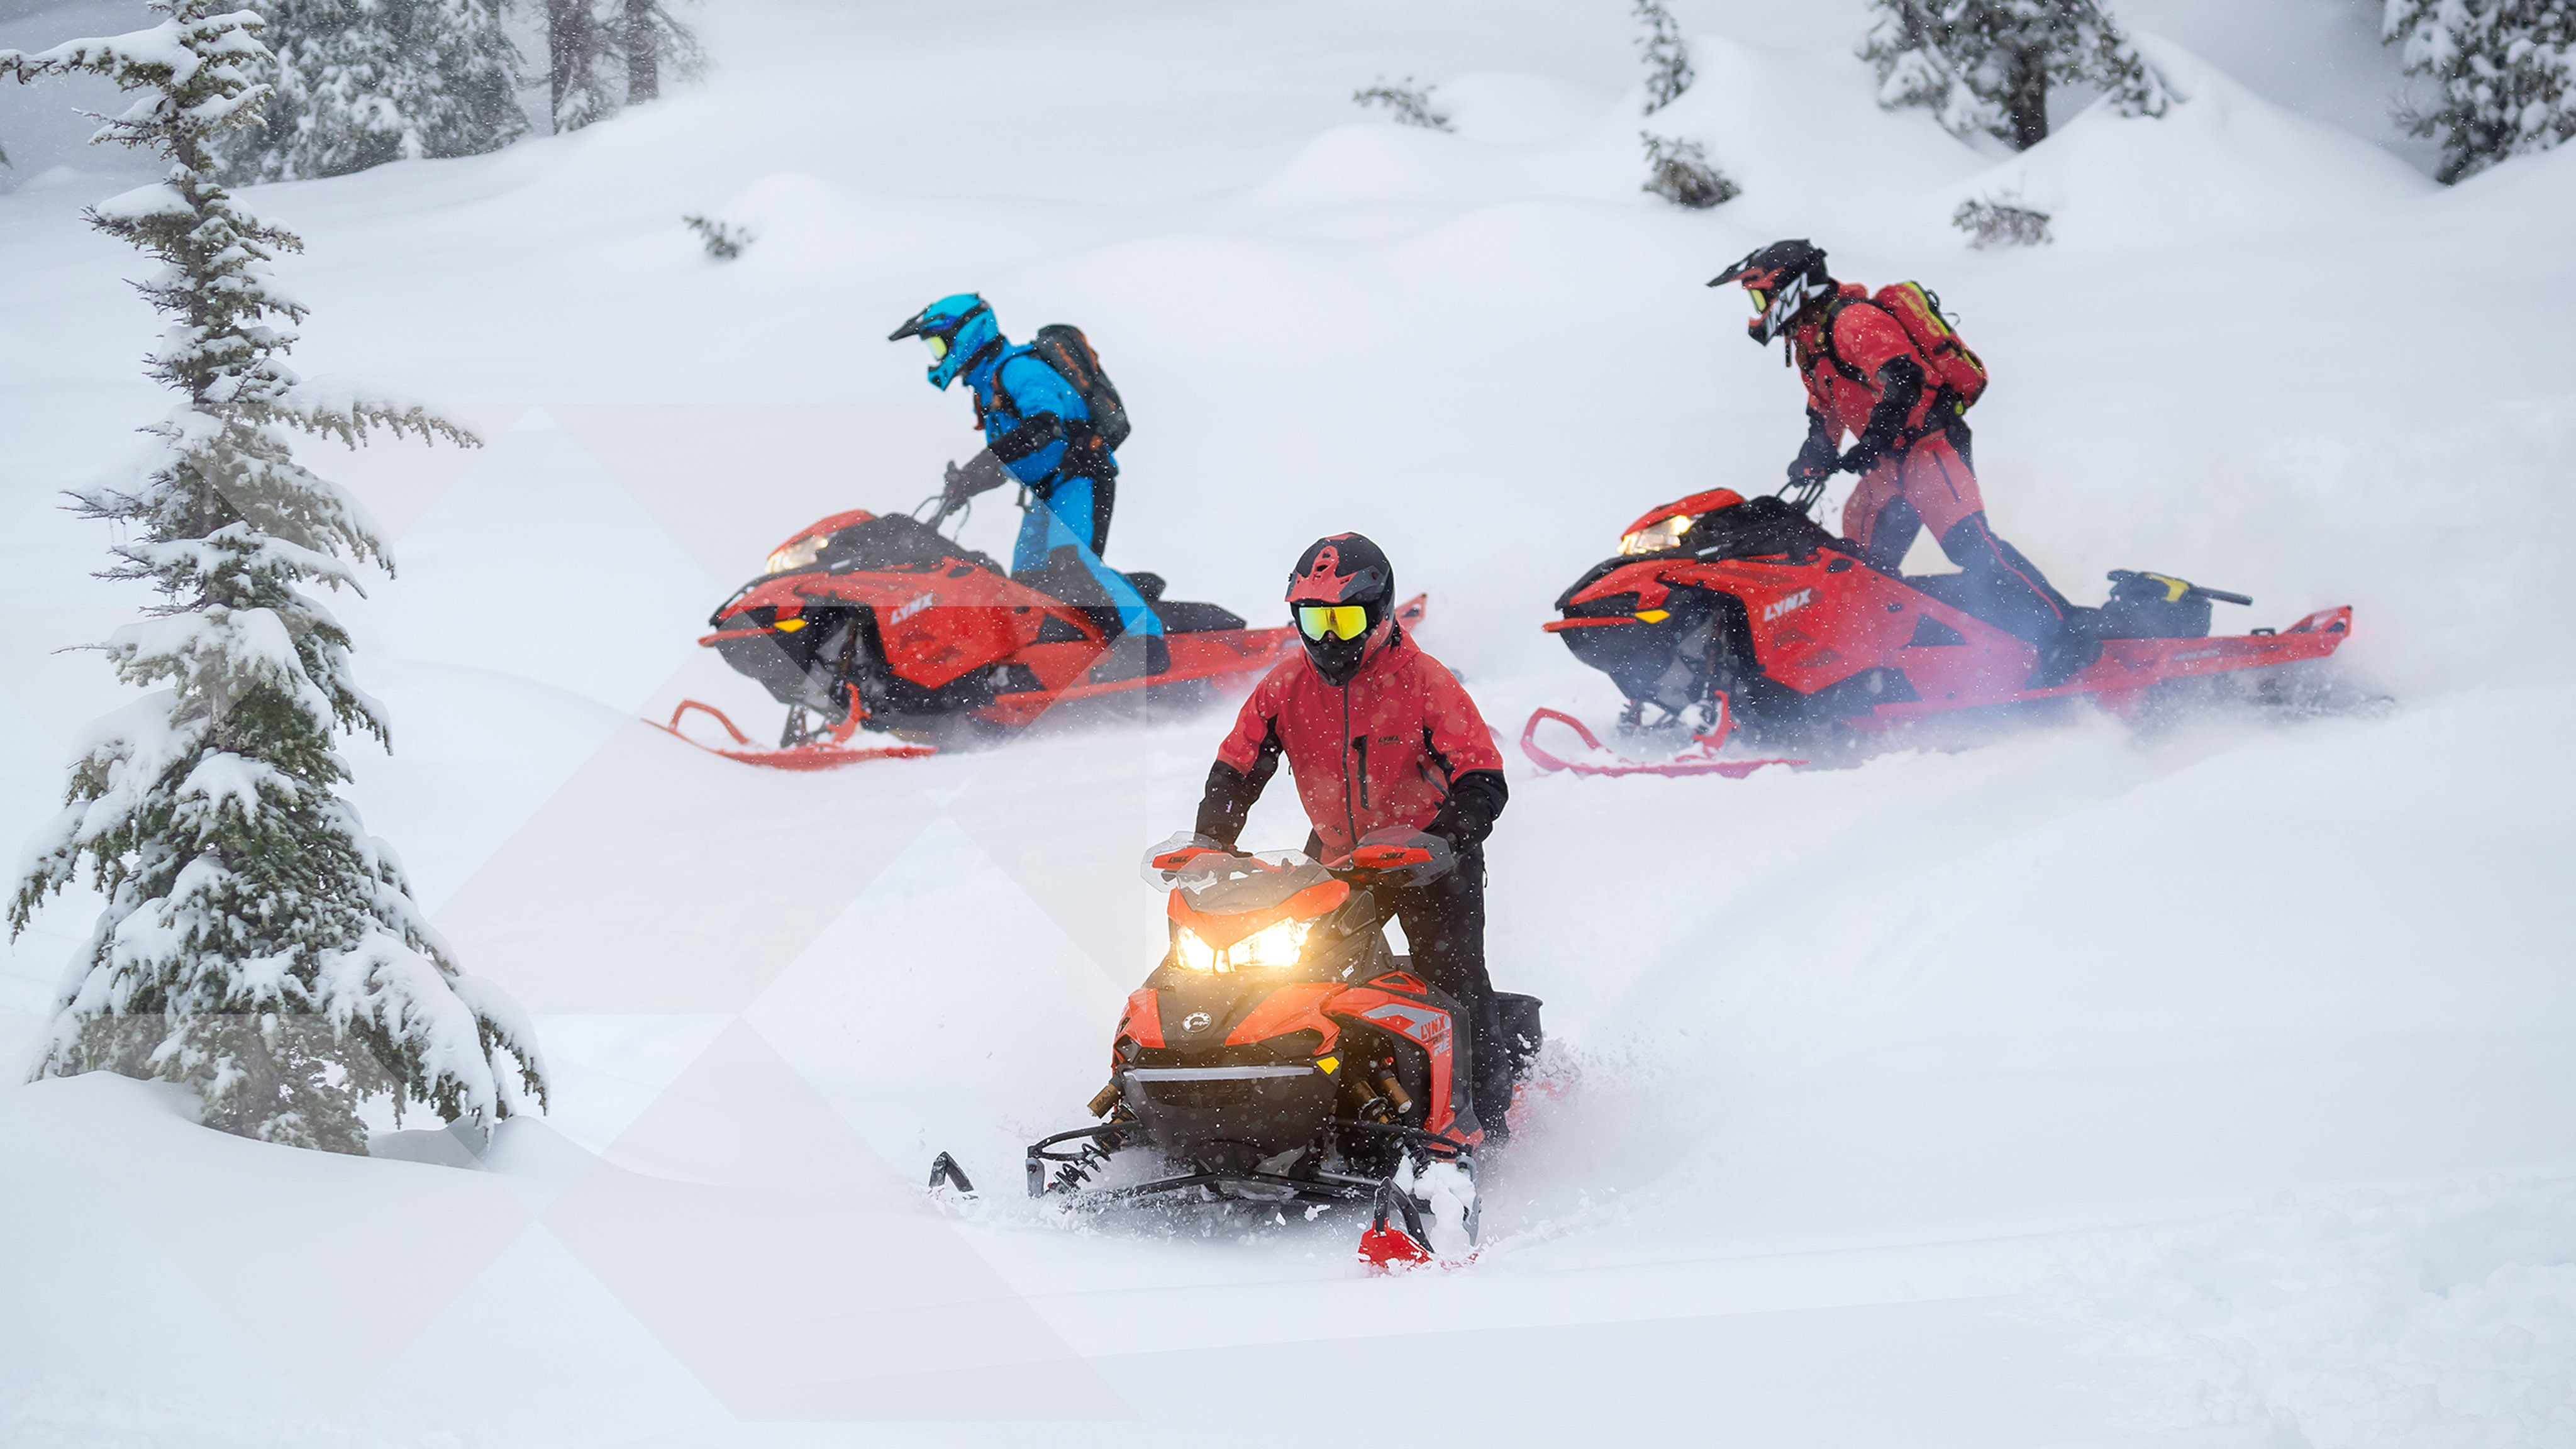 3 Riders enjoying a Backcountry snowmobile ride